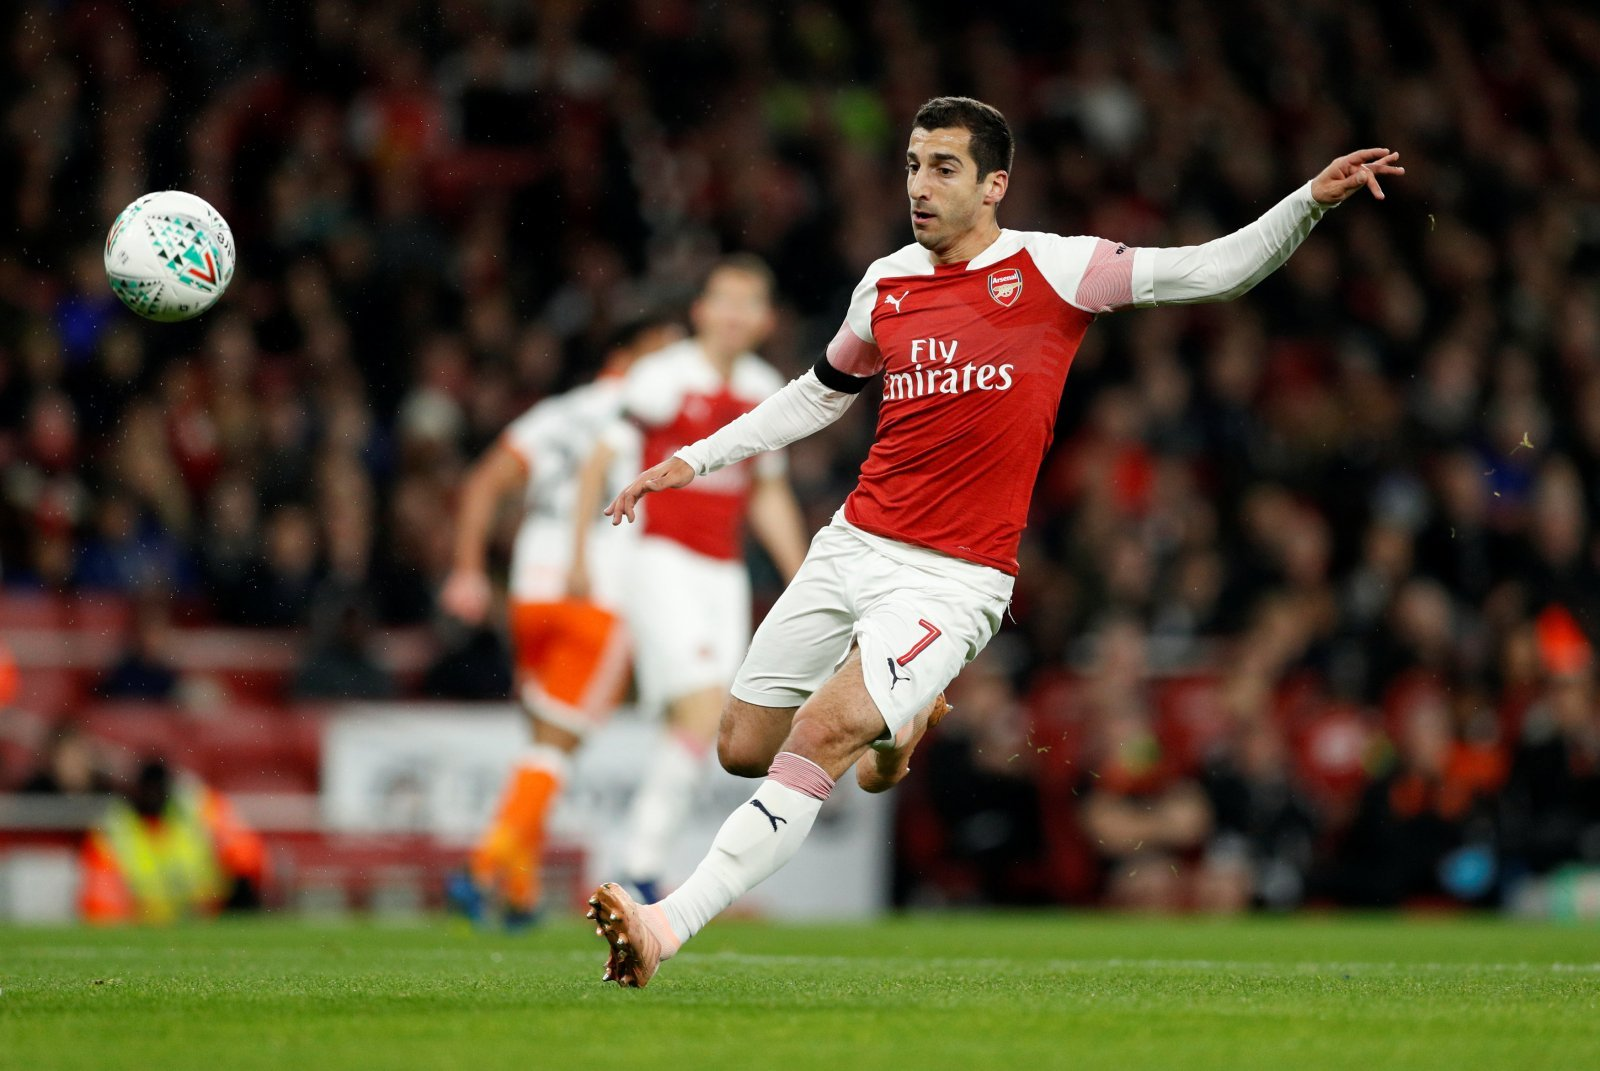 Arsenal fans take to Twitter to call for Henrikh Mkhitaryan return